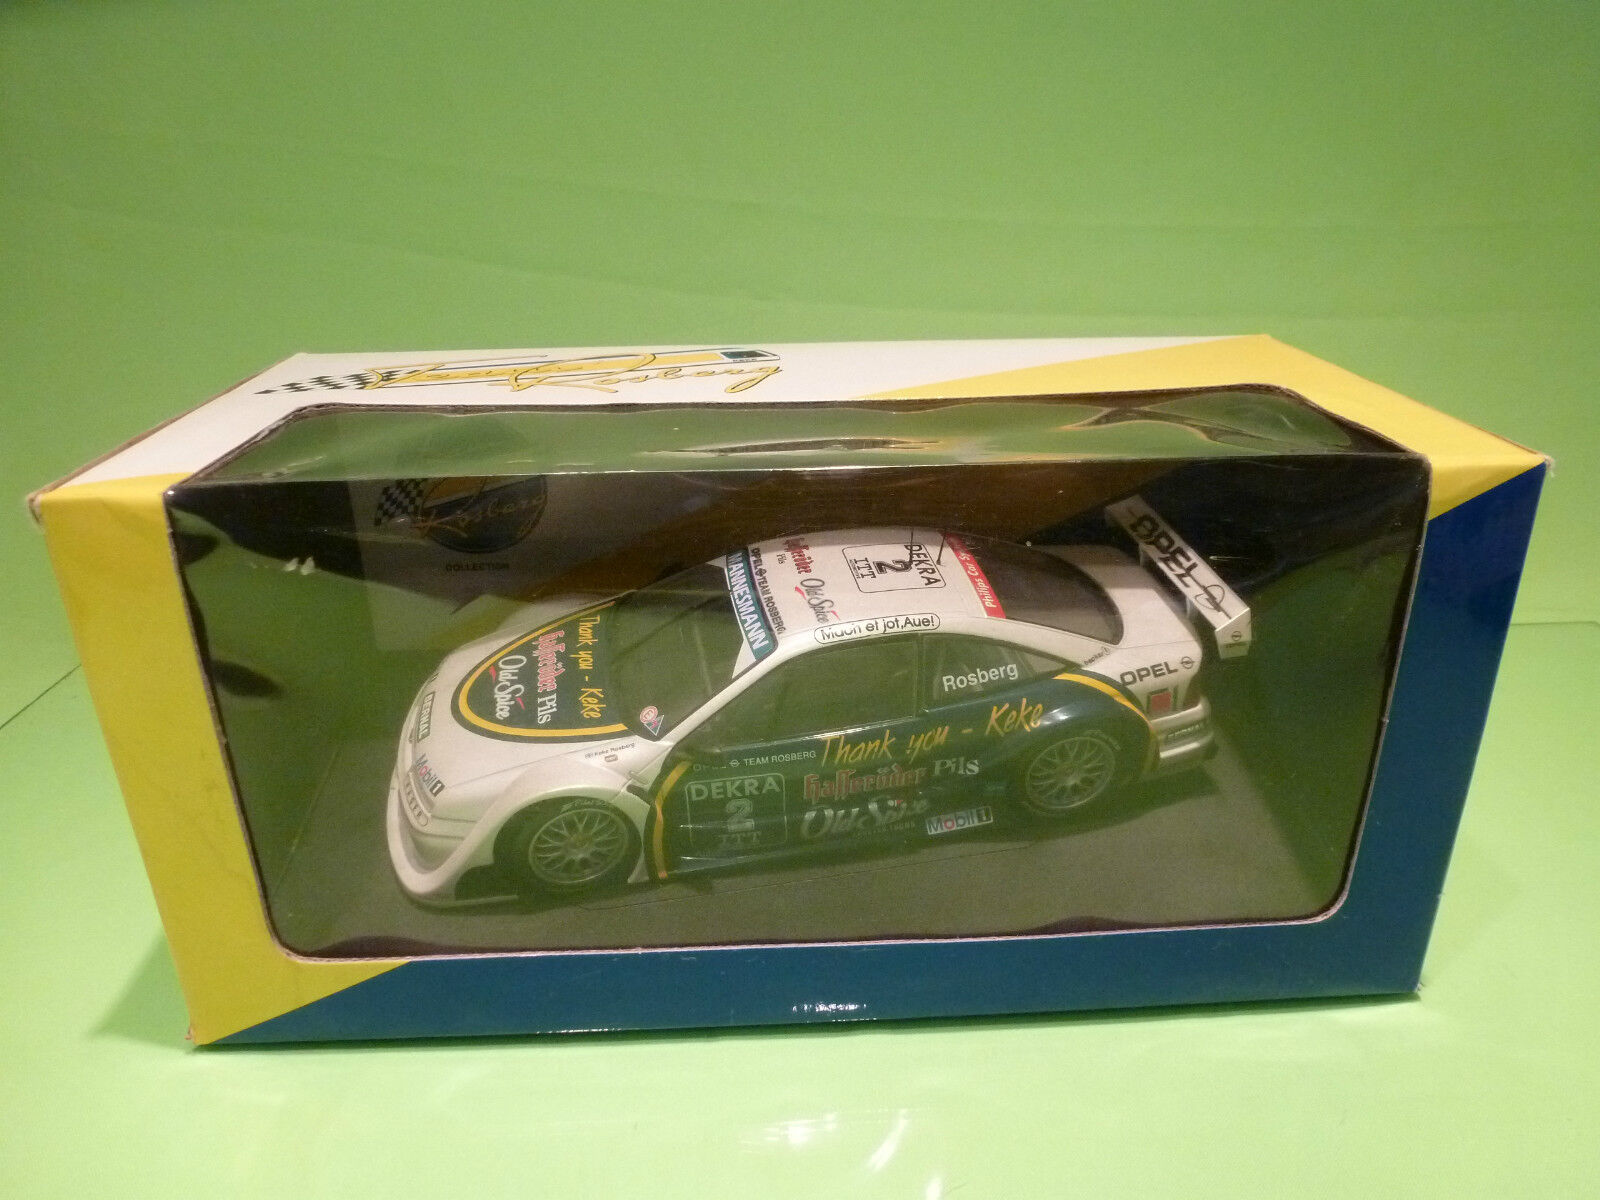 UT MODELS 1 18 OPEL CALIBRA V6 ITC   ROSBERG     - GOOD CONDITION IN BOX